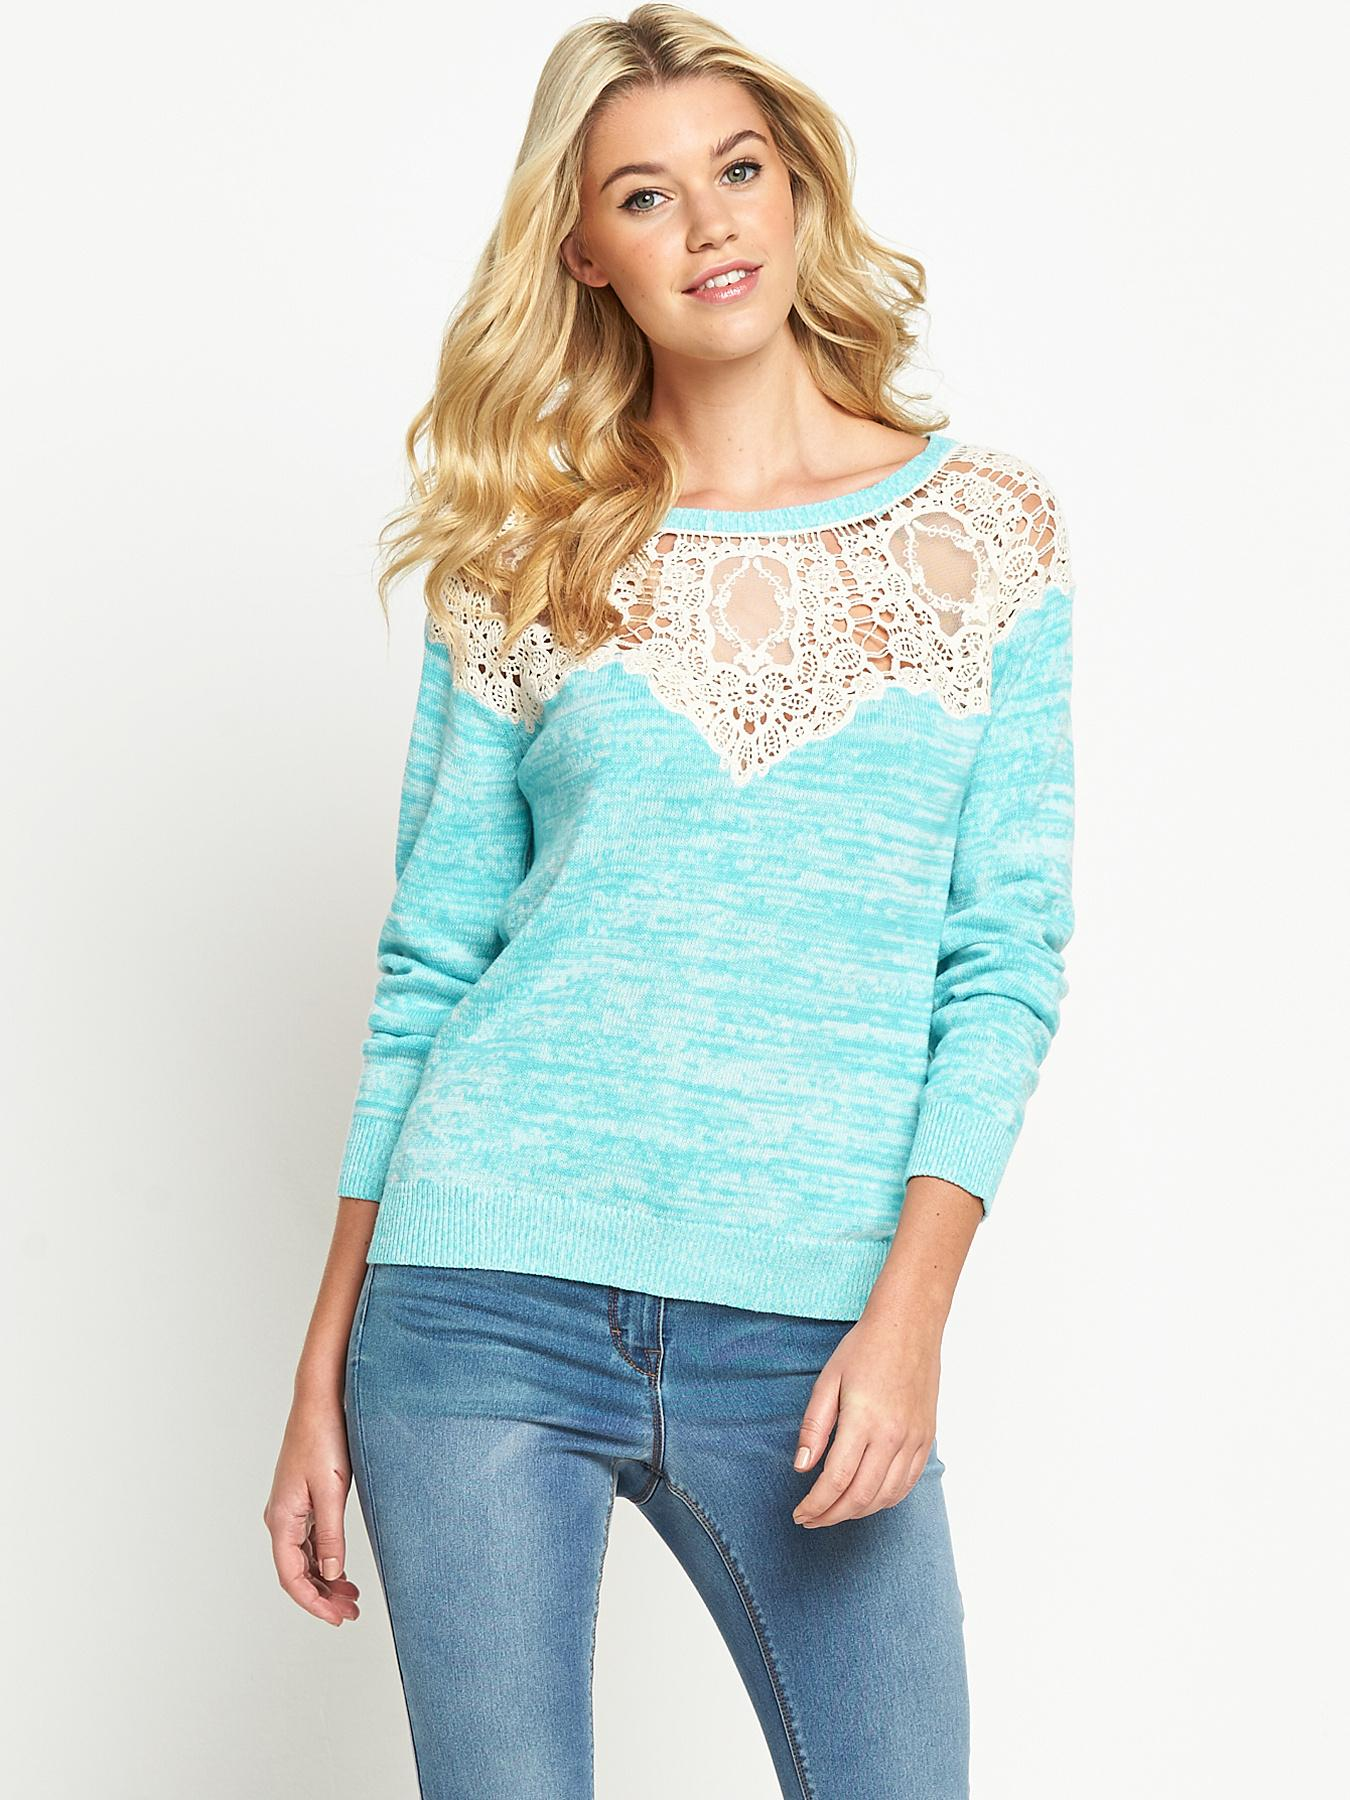 South Crochet Lace Yoke Jumper - Blue, Black,Blue.